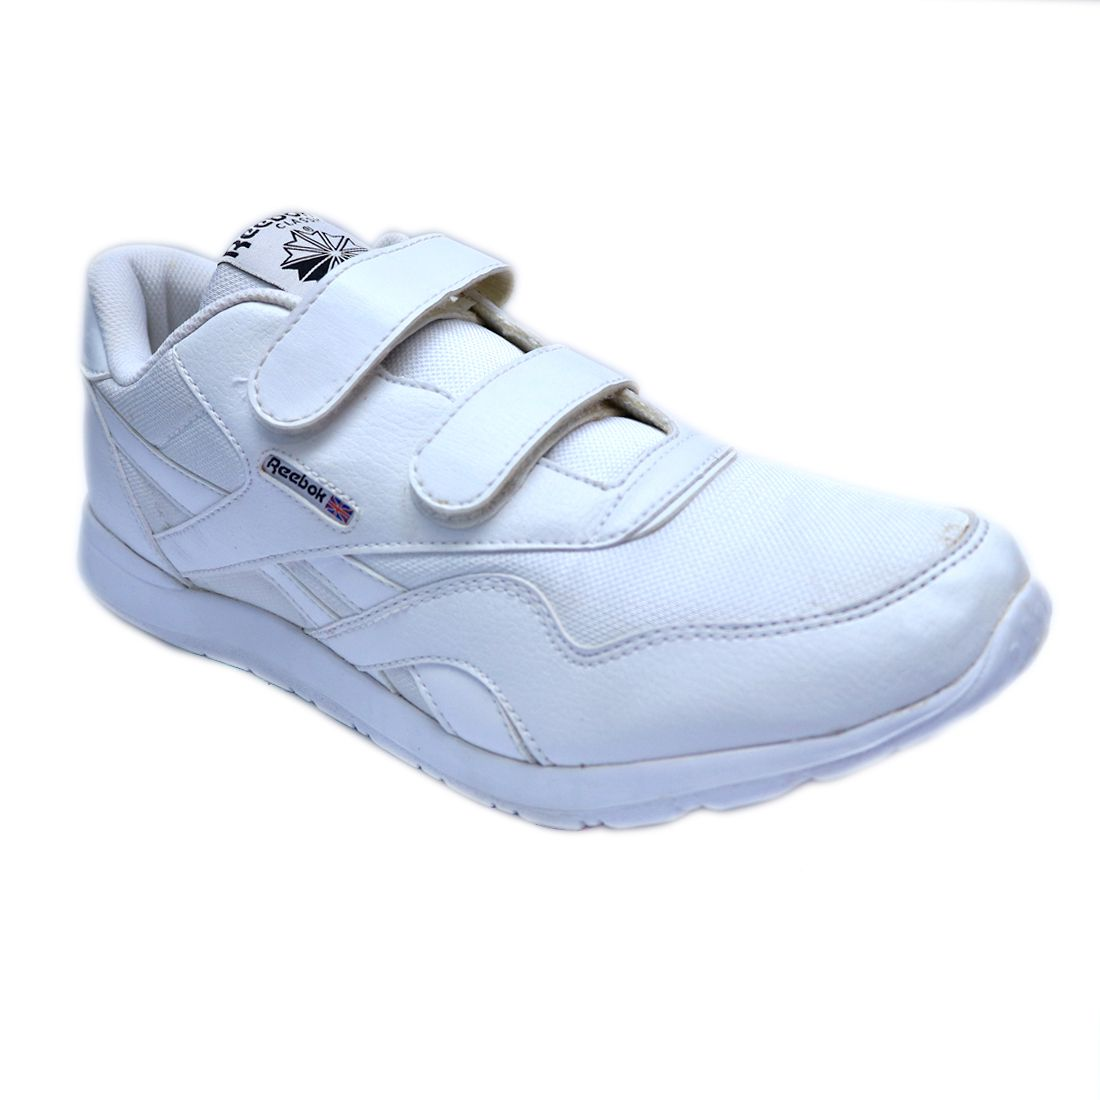 0a90fbd3c33623 Reebok Blaze Ultra J91185 White Running Shoes - Buy Reebok Blaze Ultra  J91185 White Running Shoes Online at Best Prices in India on Snapdeal